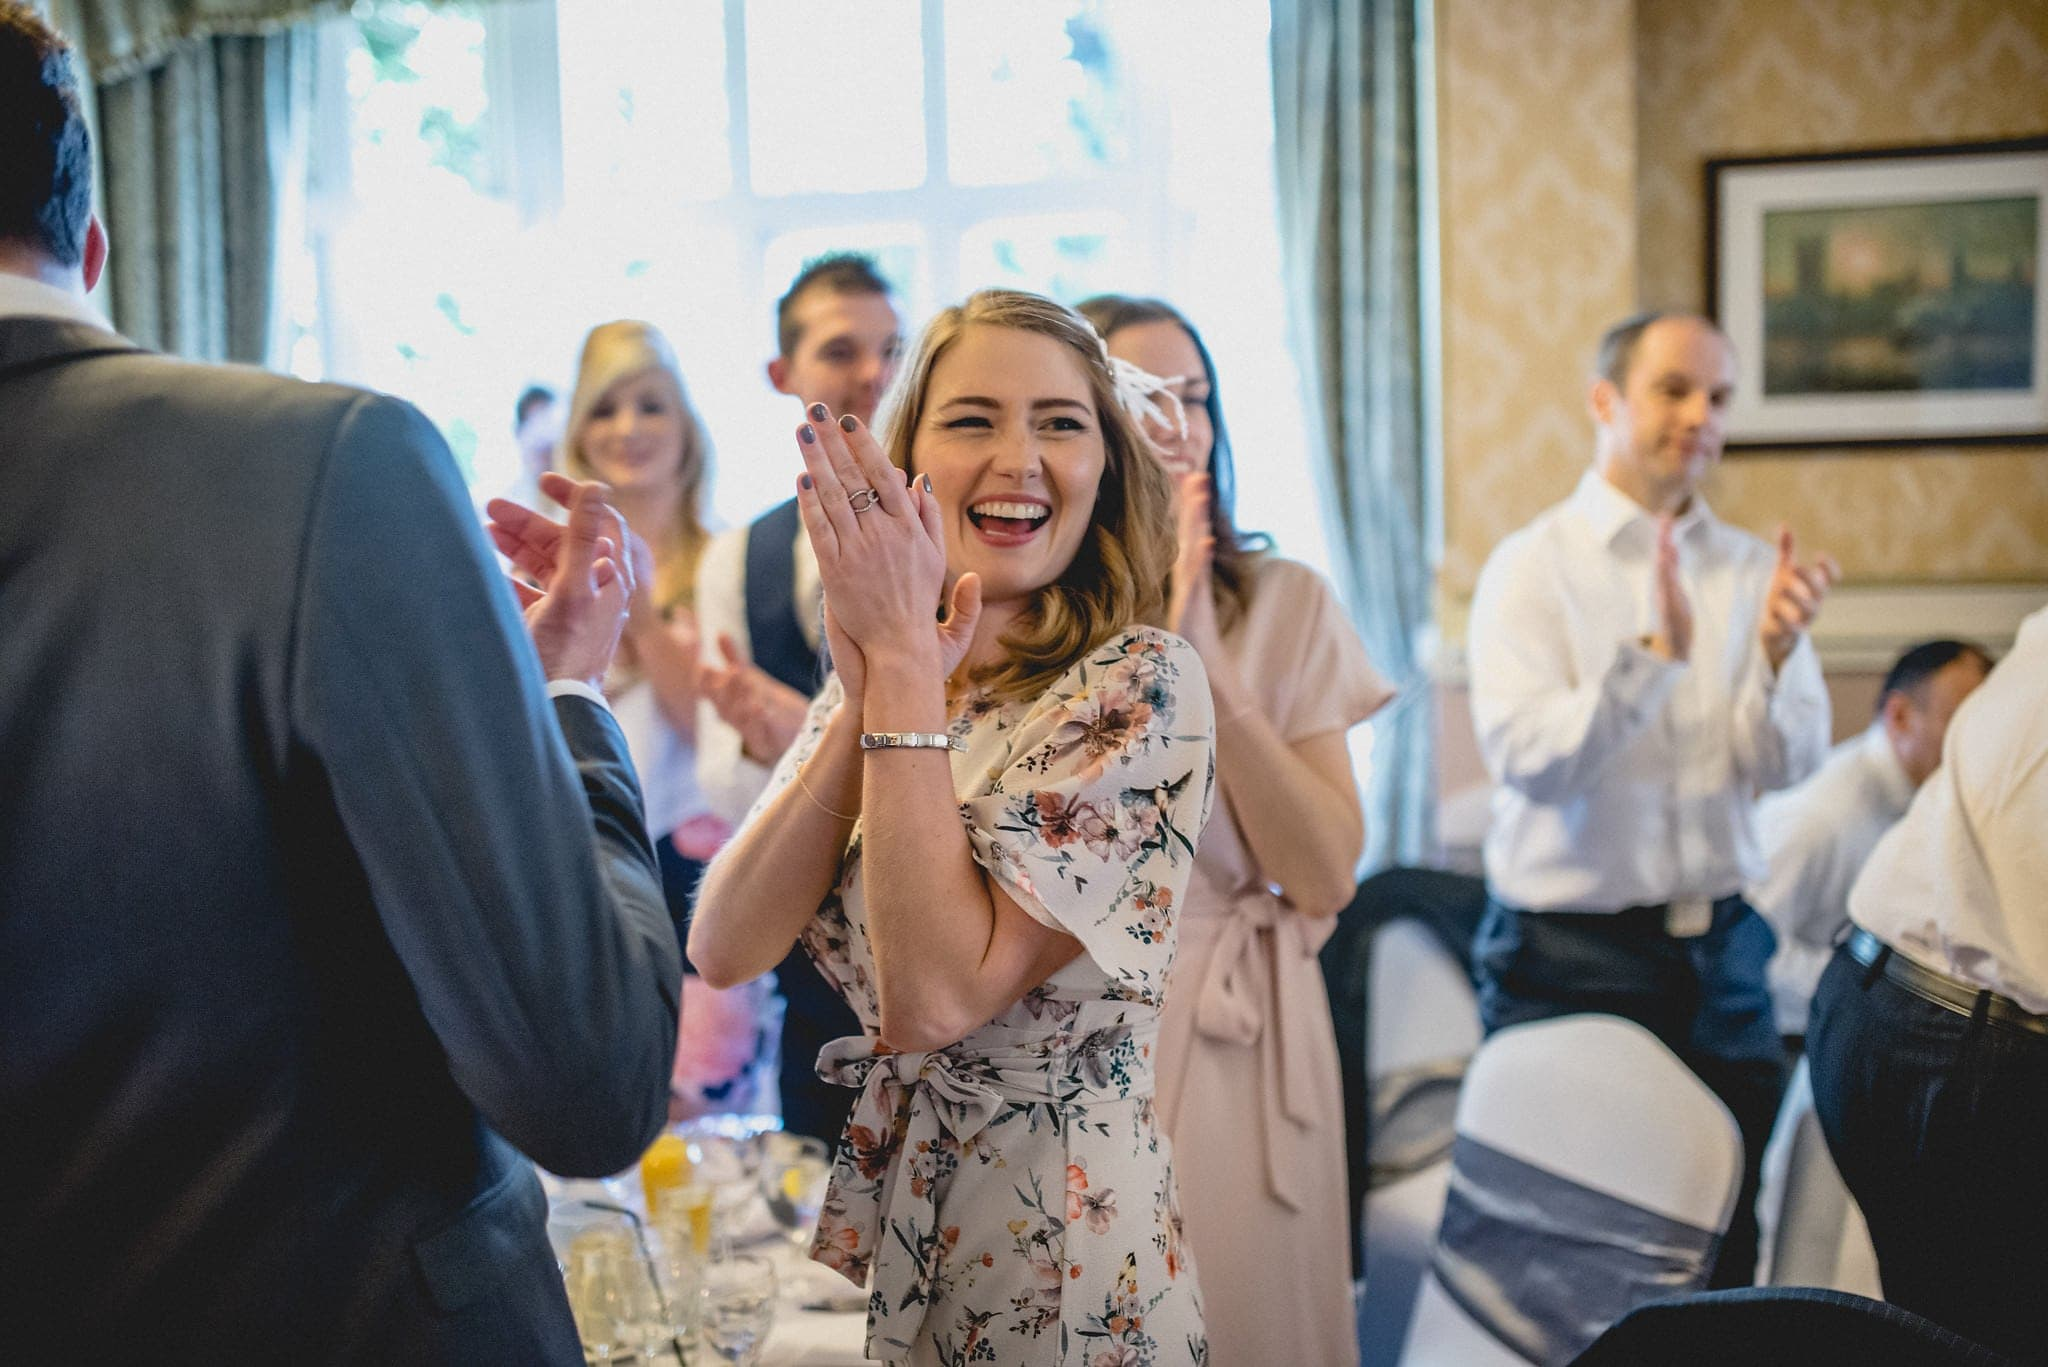 Guests applaud during wedding speeches at Shendish Manor